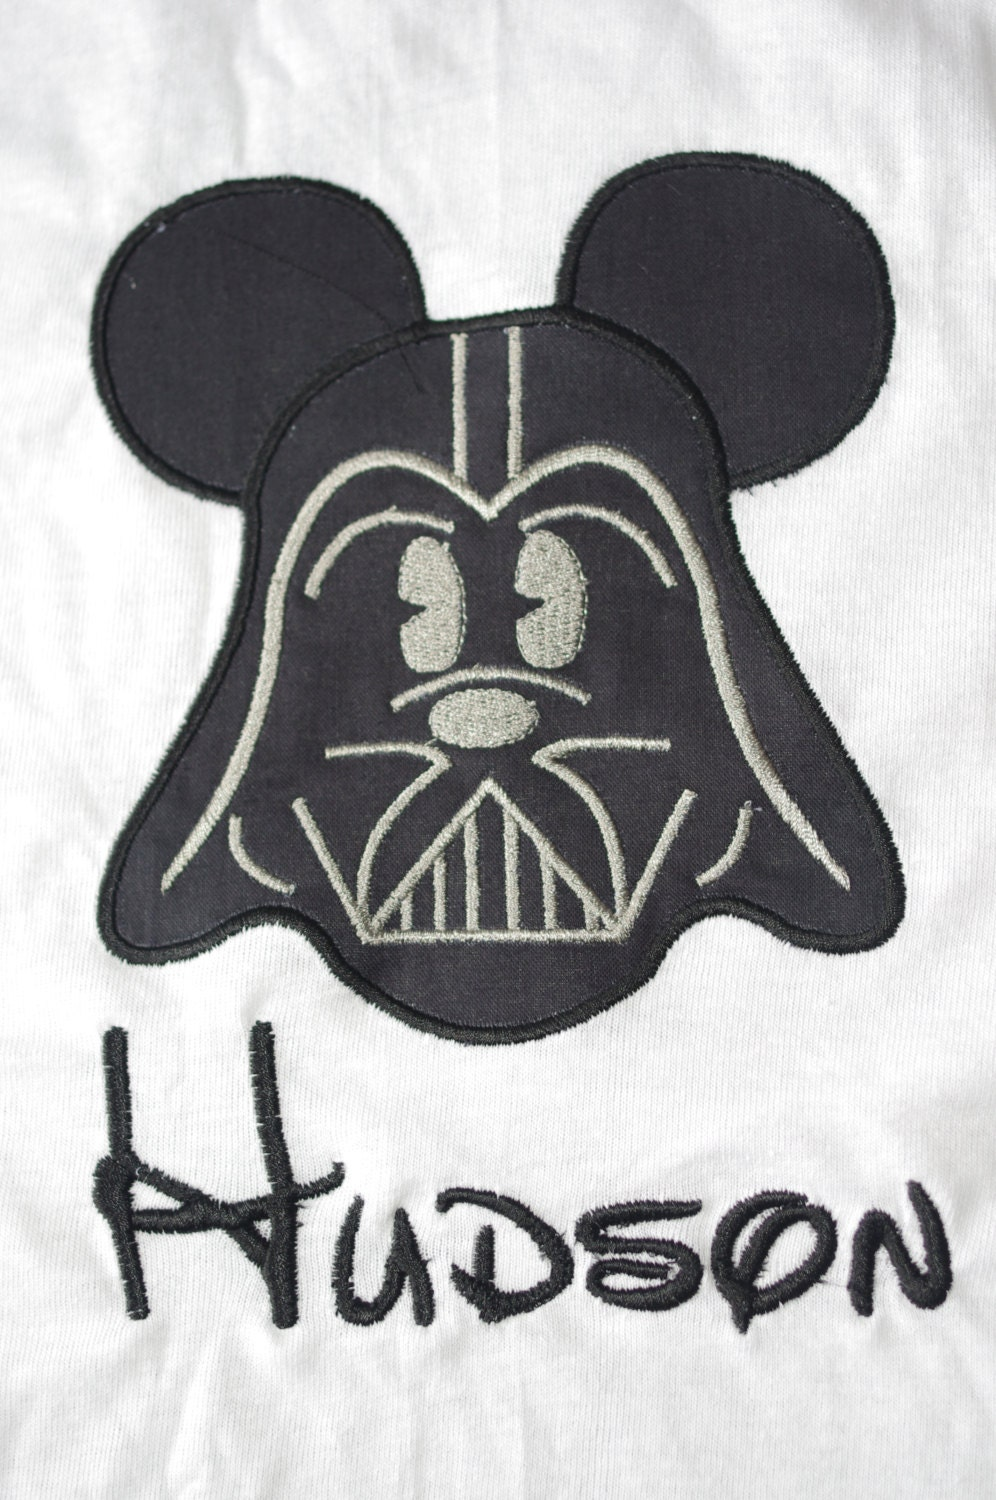 Mickey Mouse Star Wars Applique Shirt Or Onesie By Livieq